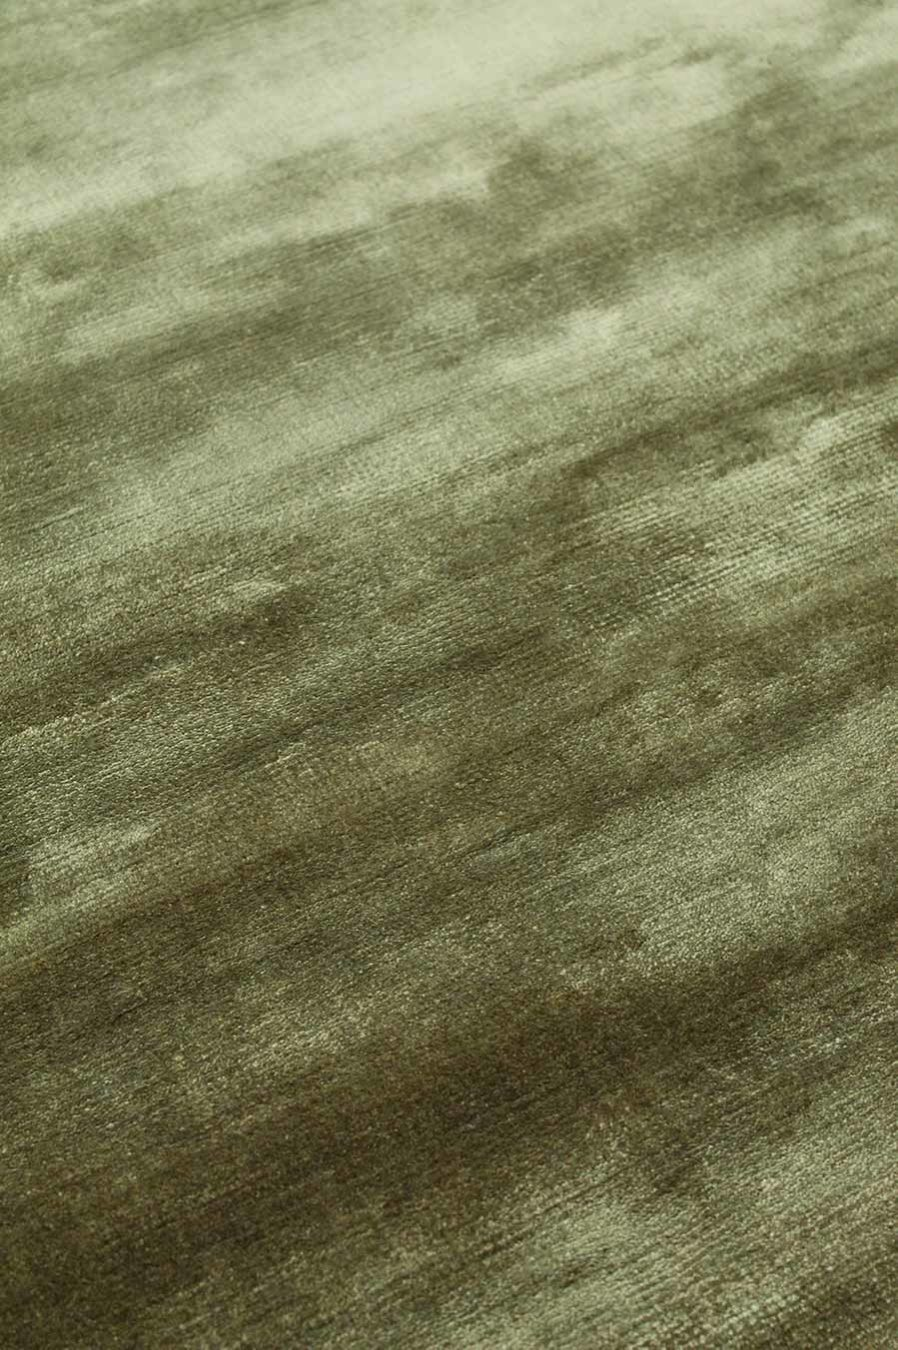 Close up view of metallic Glam rug in olive green colour